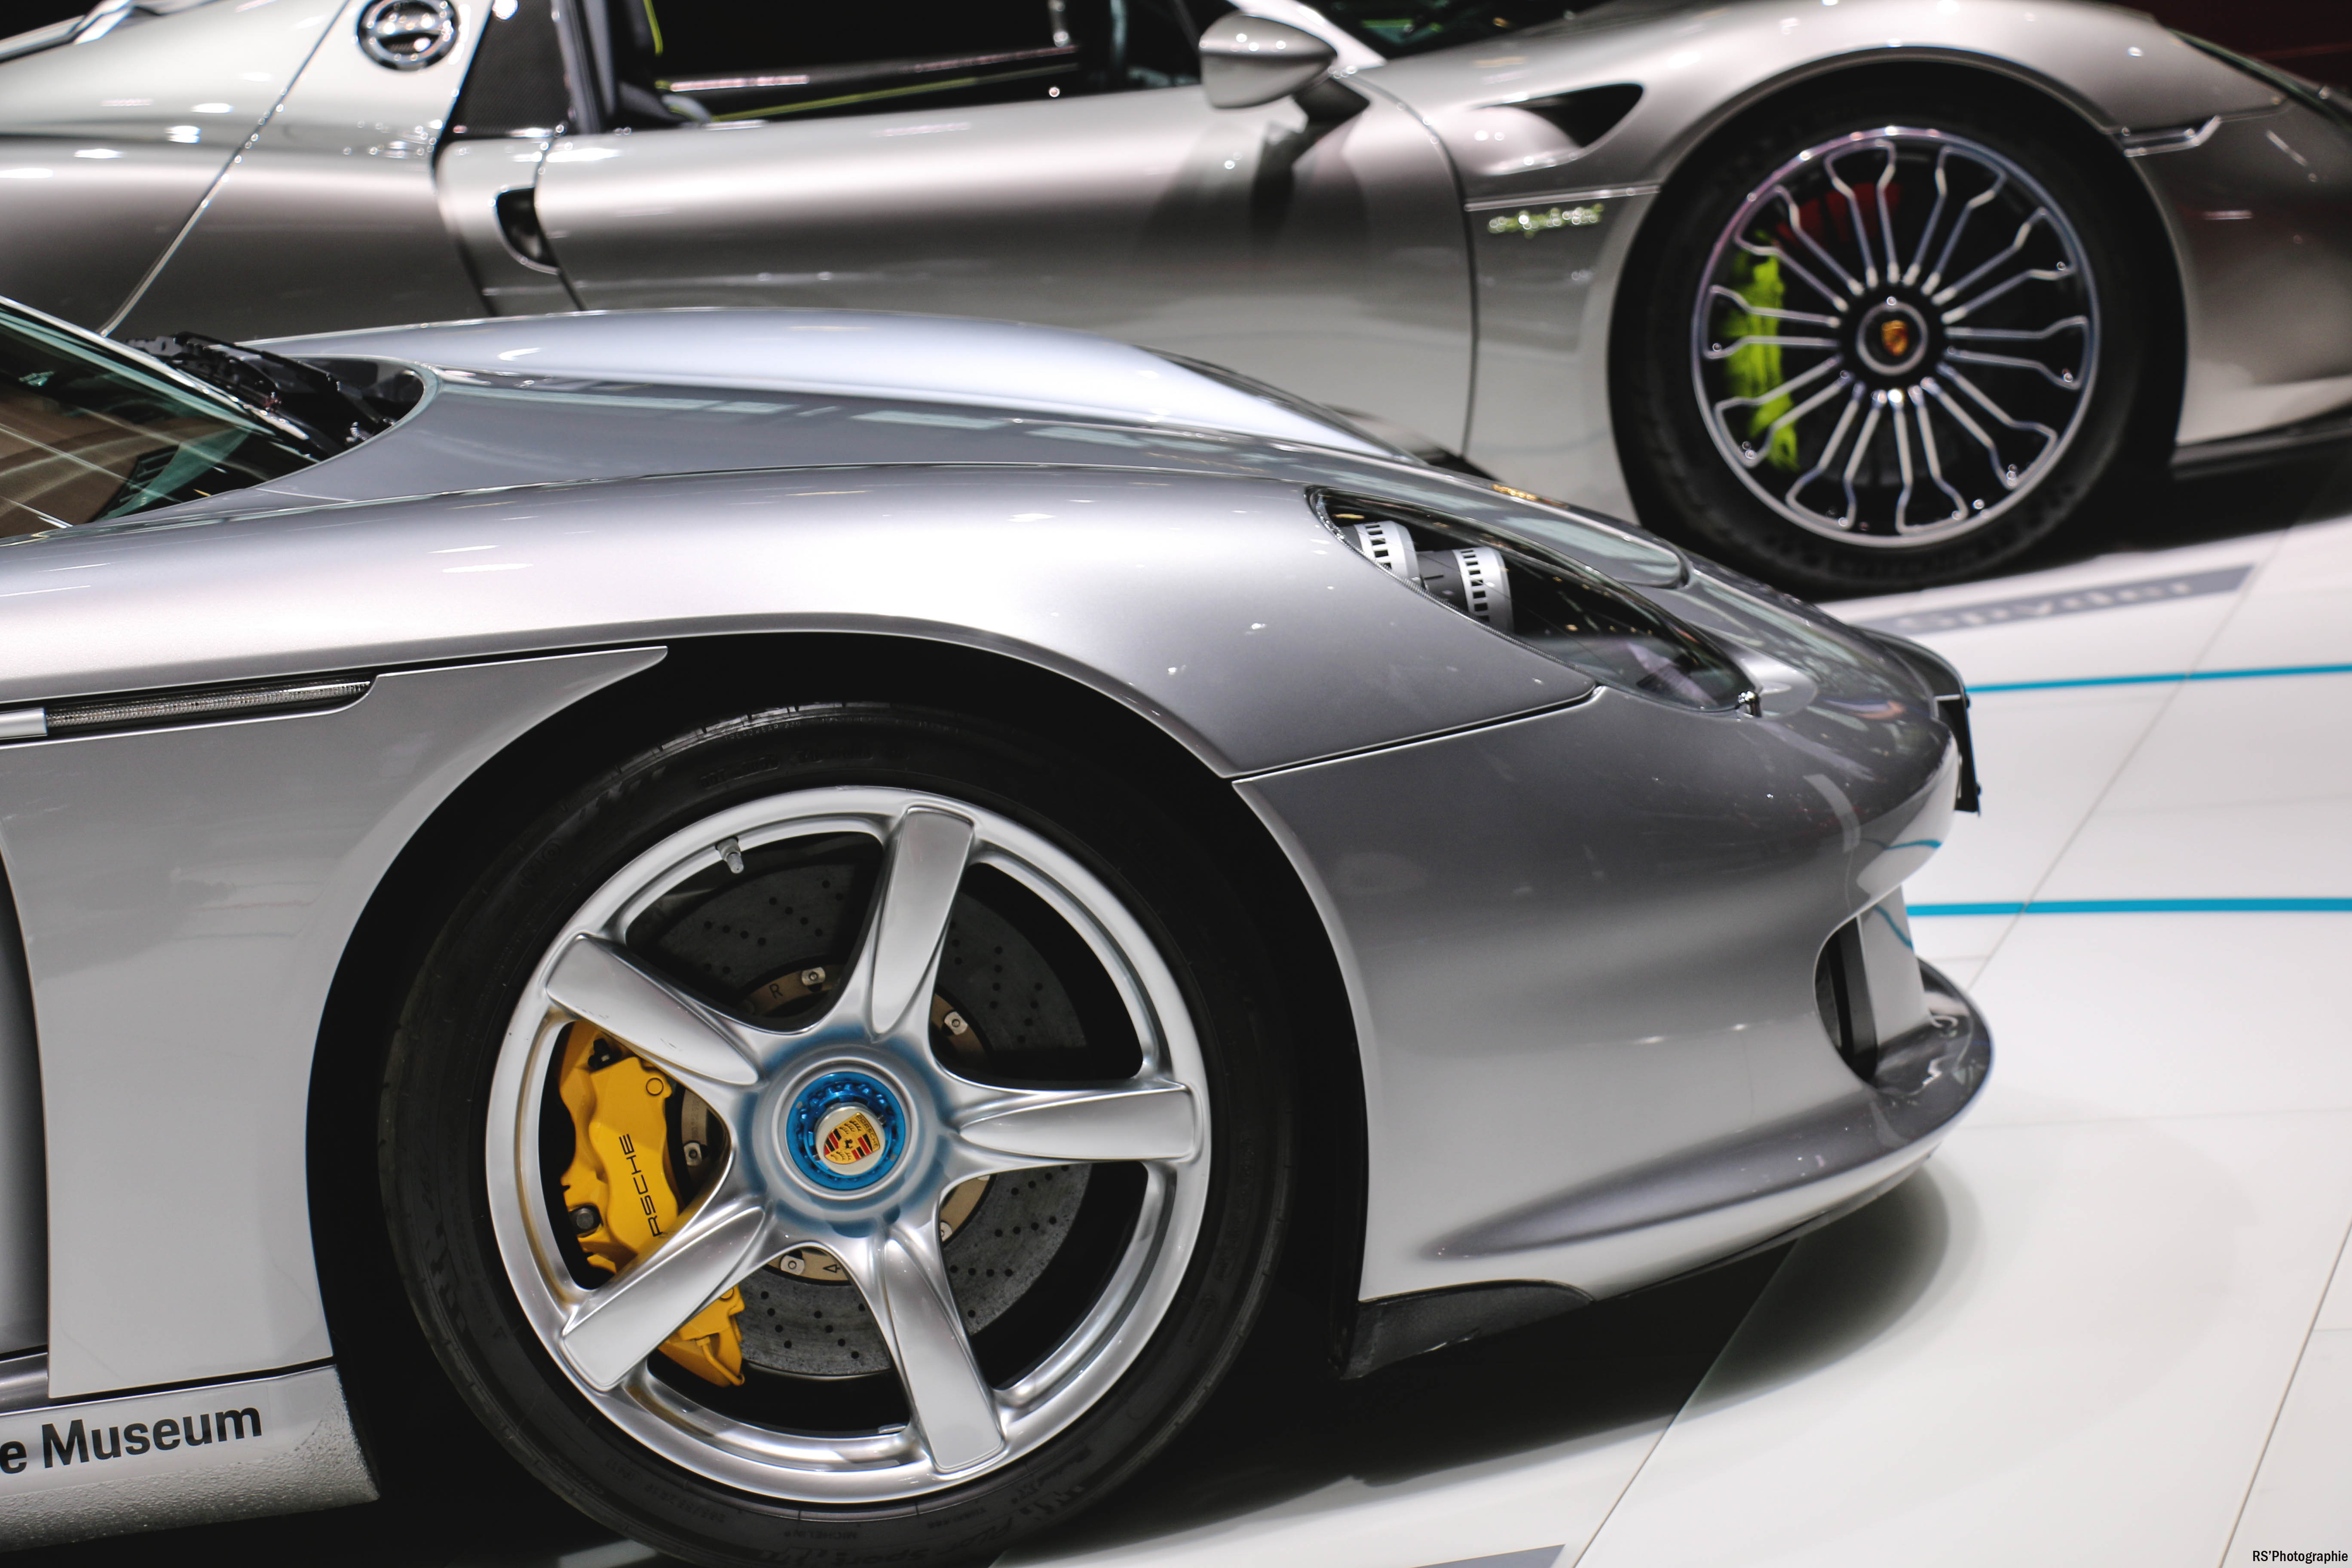 Porsche Carrera GT - front wheel - Paris Motor Show - 2018 - Mondial Auto - photo by Arnaud Demasier RS Photographie